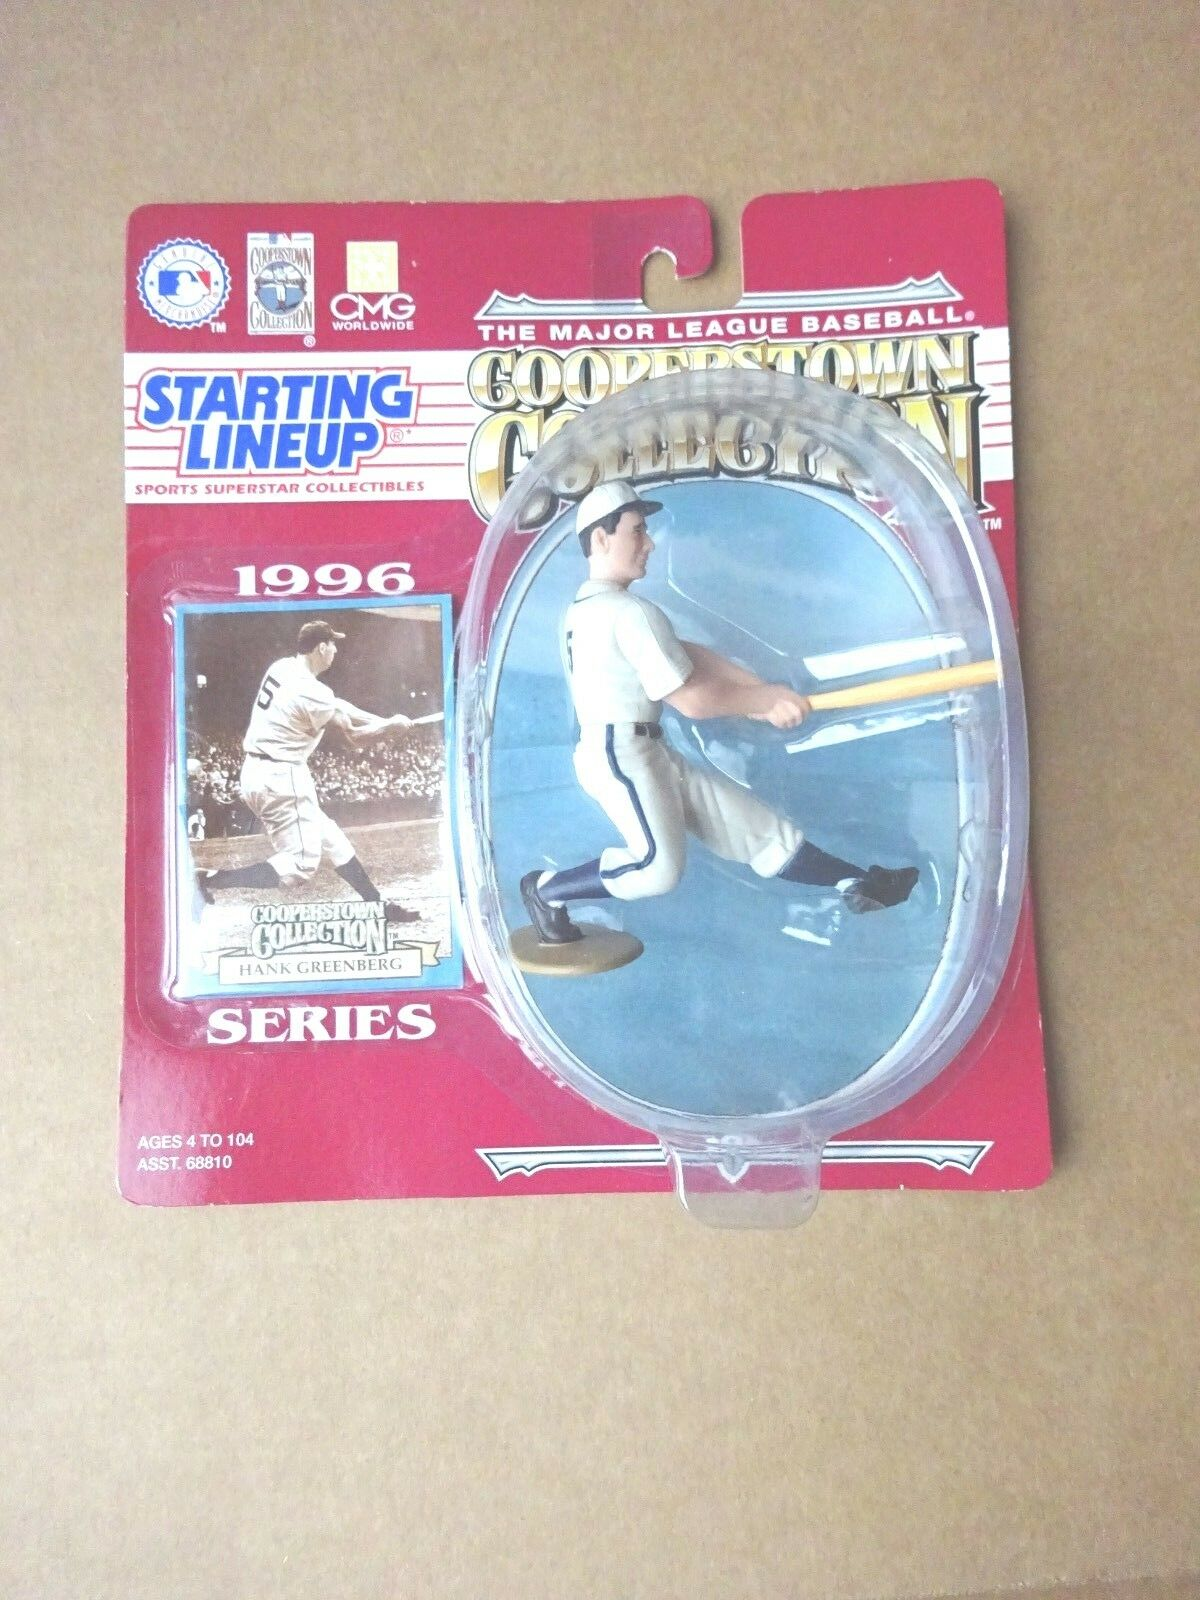 Starting Lineup Hank Greenberg Cooperstown 1996 action figure